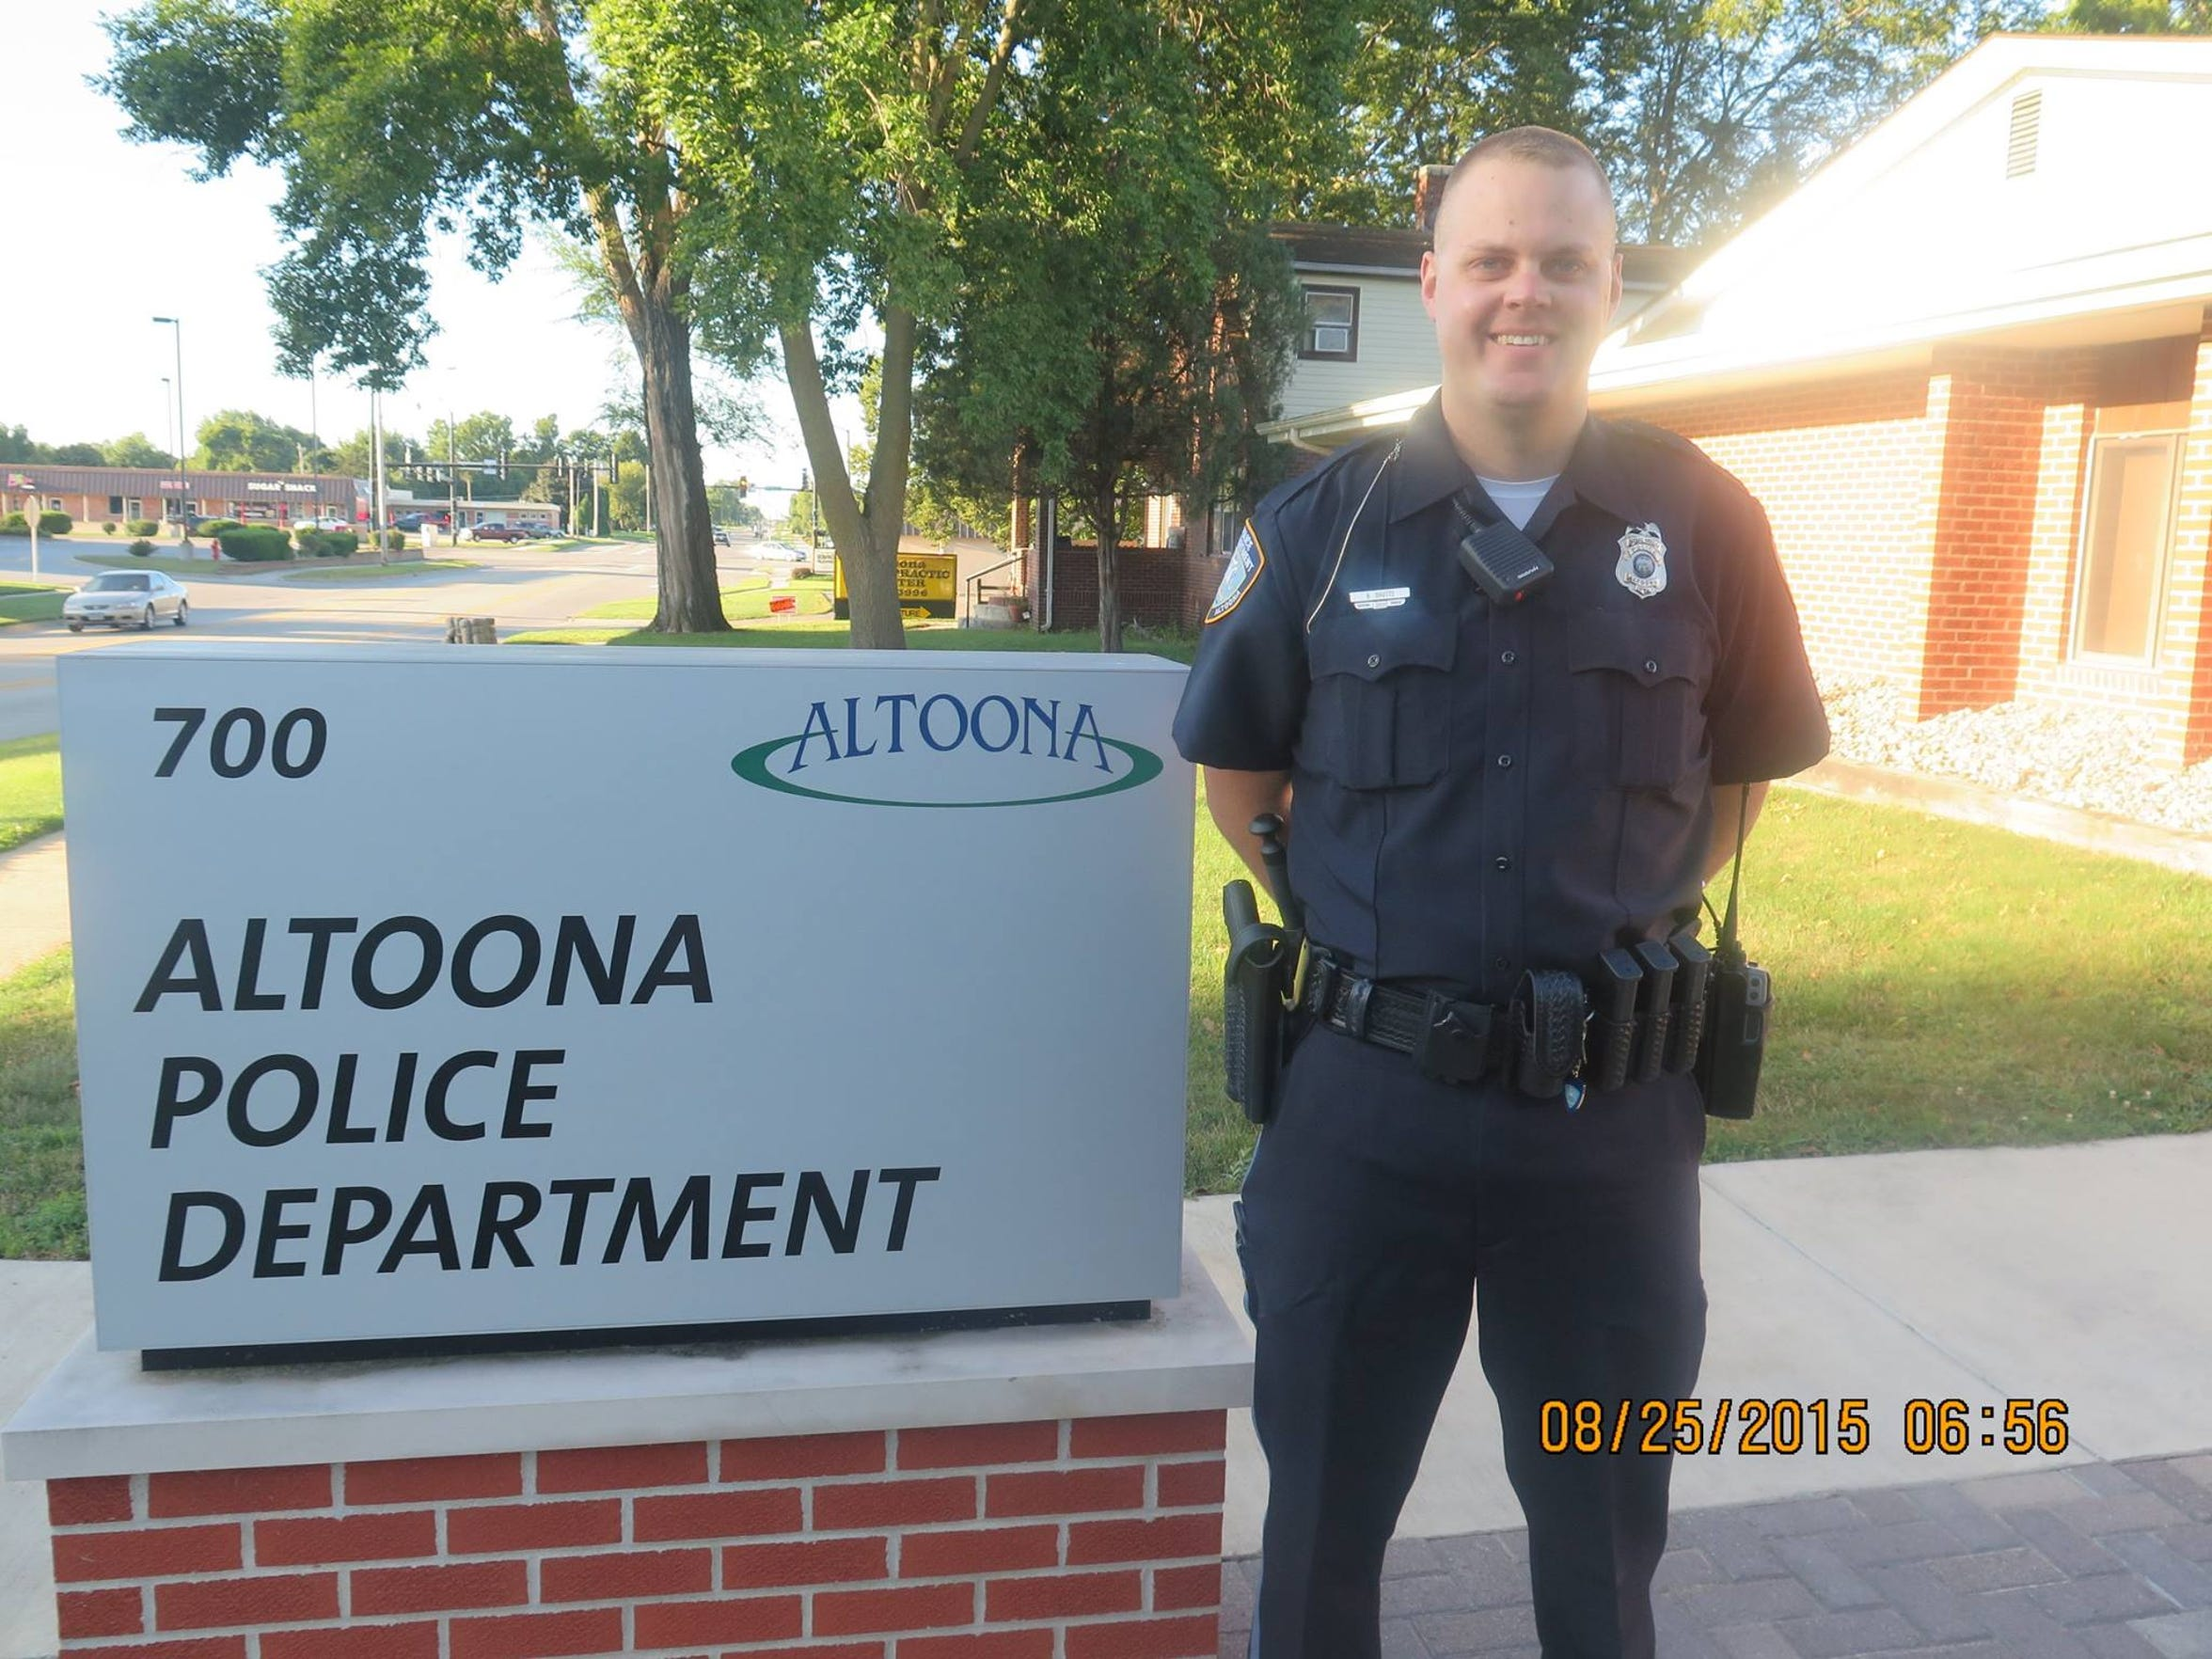 Blaine Shutts, an officer with the Altoona Police Department